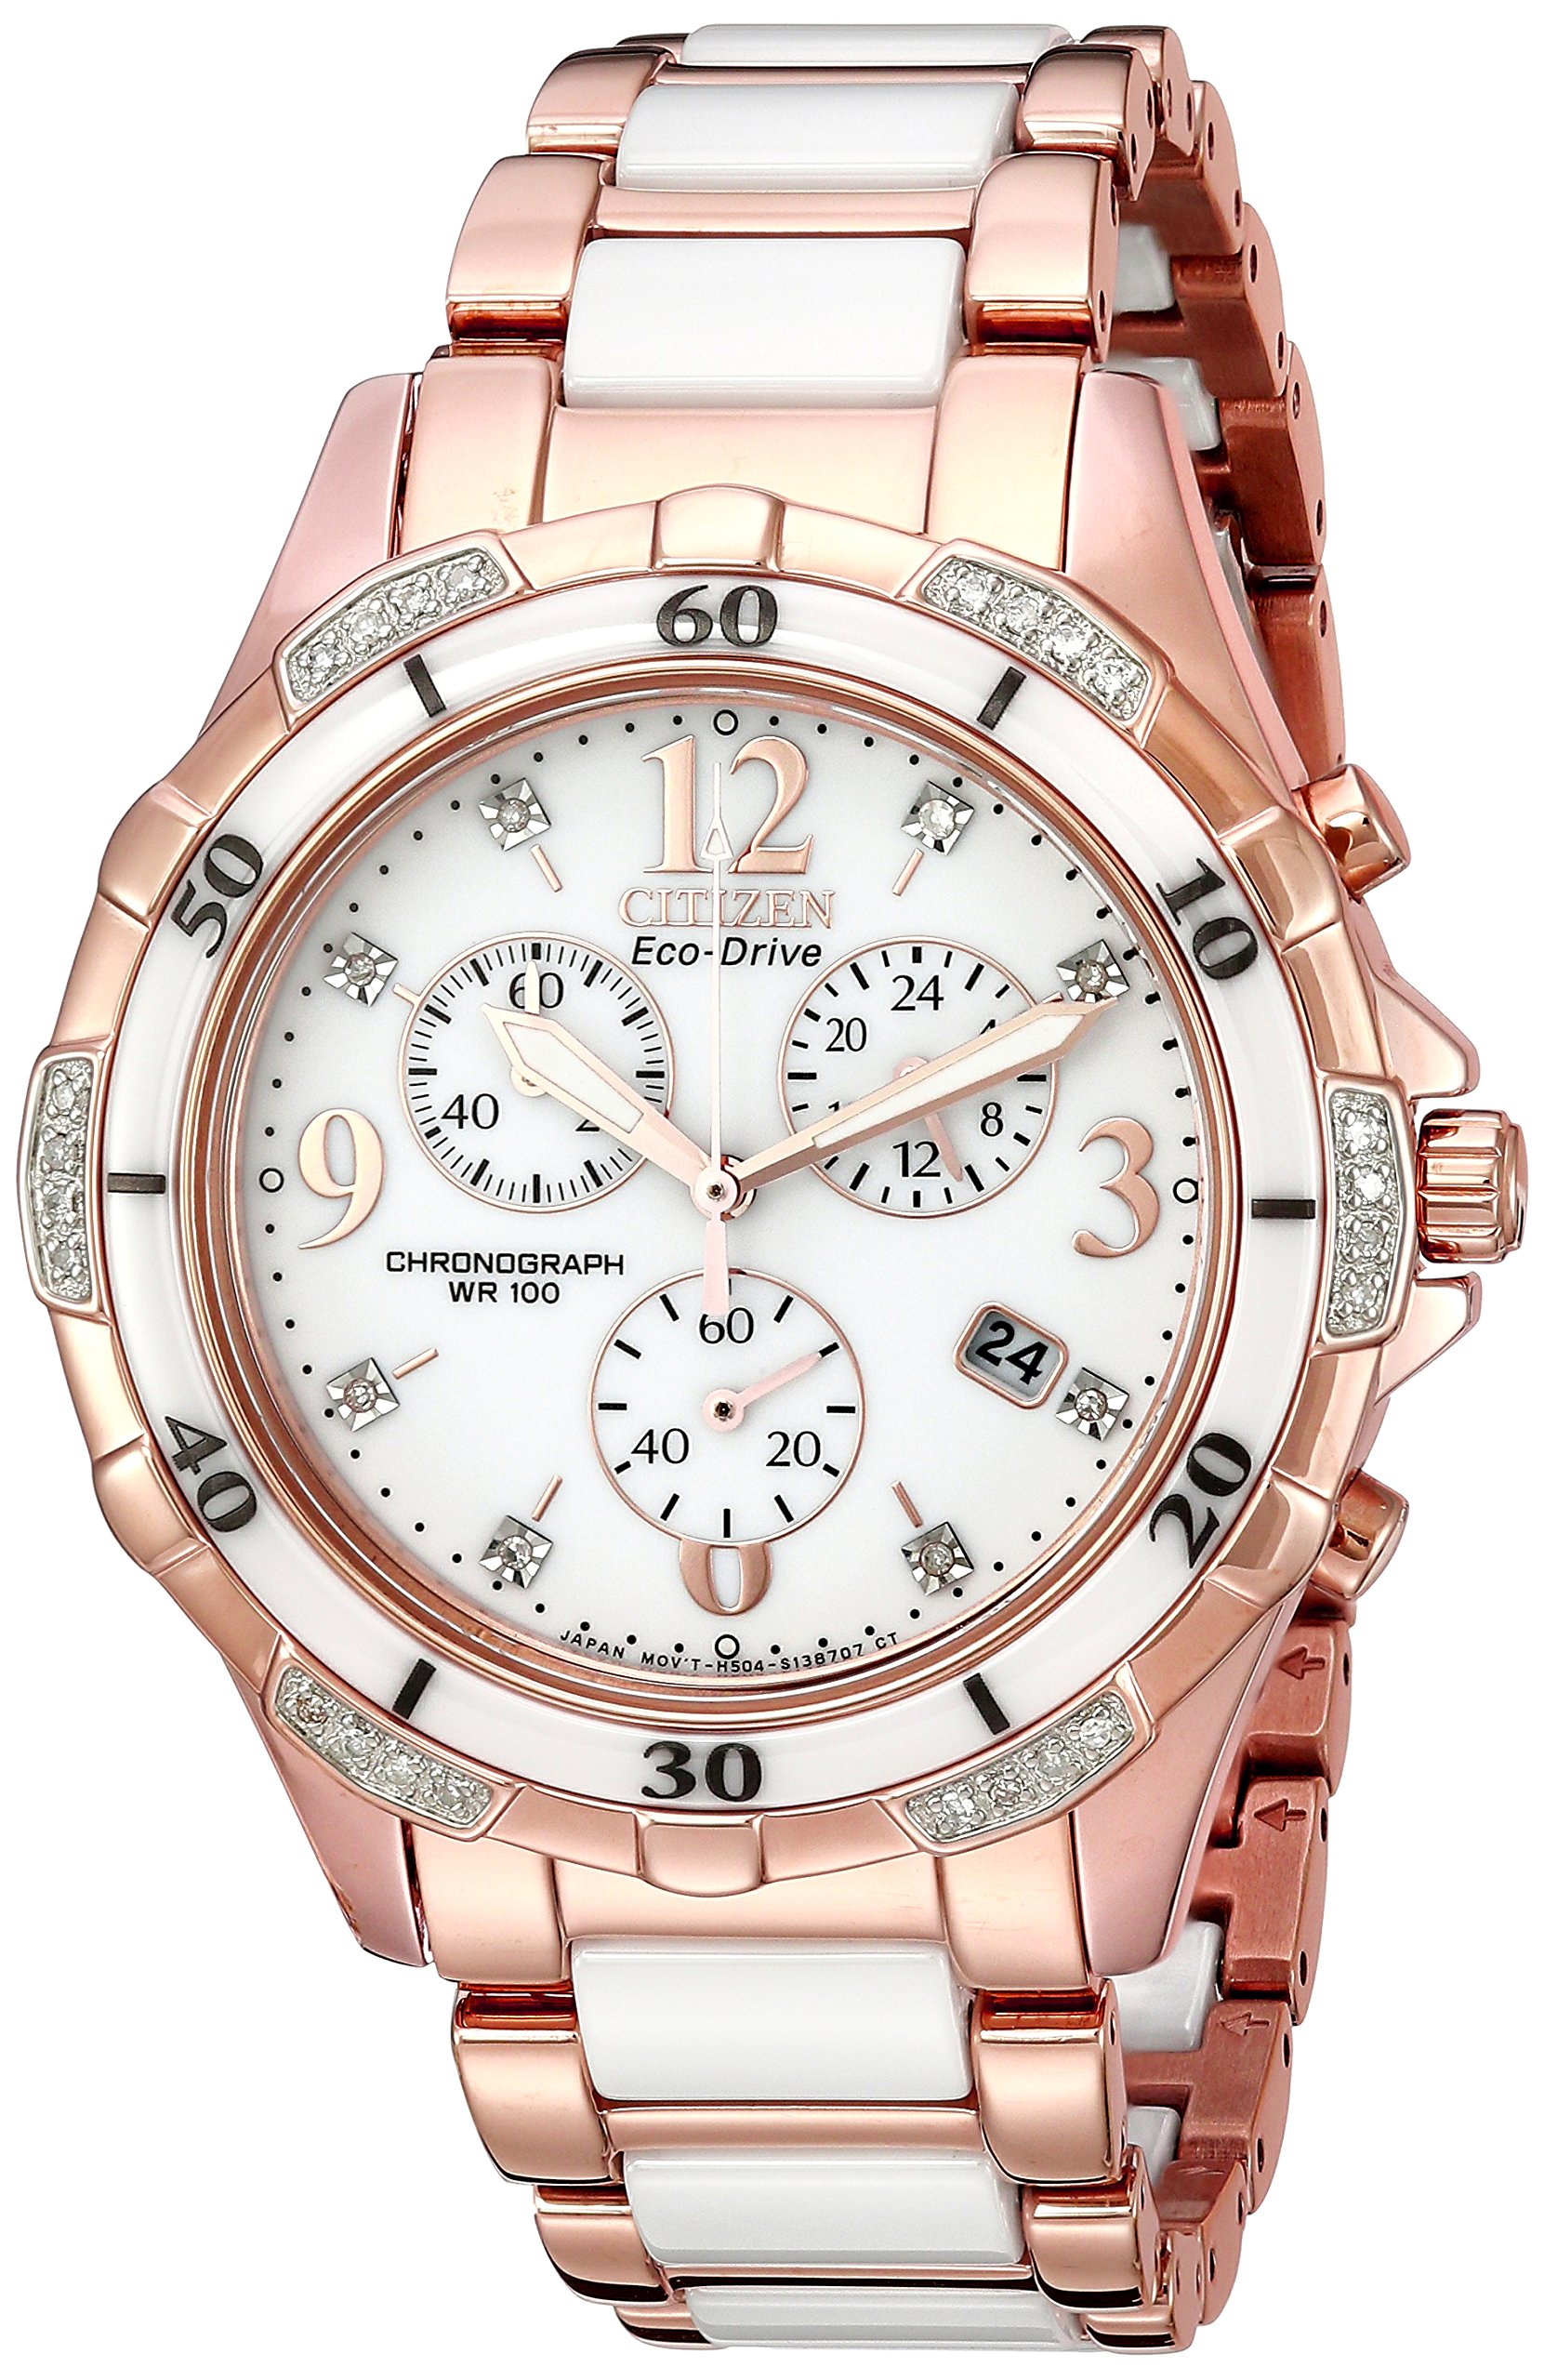 Citizen Eco-Drive Women's Ceramic Analog Display Japanese Quartz Rose Gold Watch (Model: FB1233-51A)